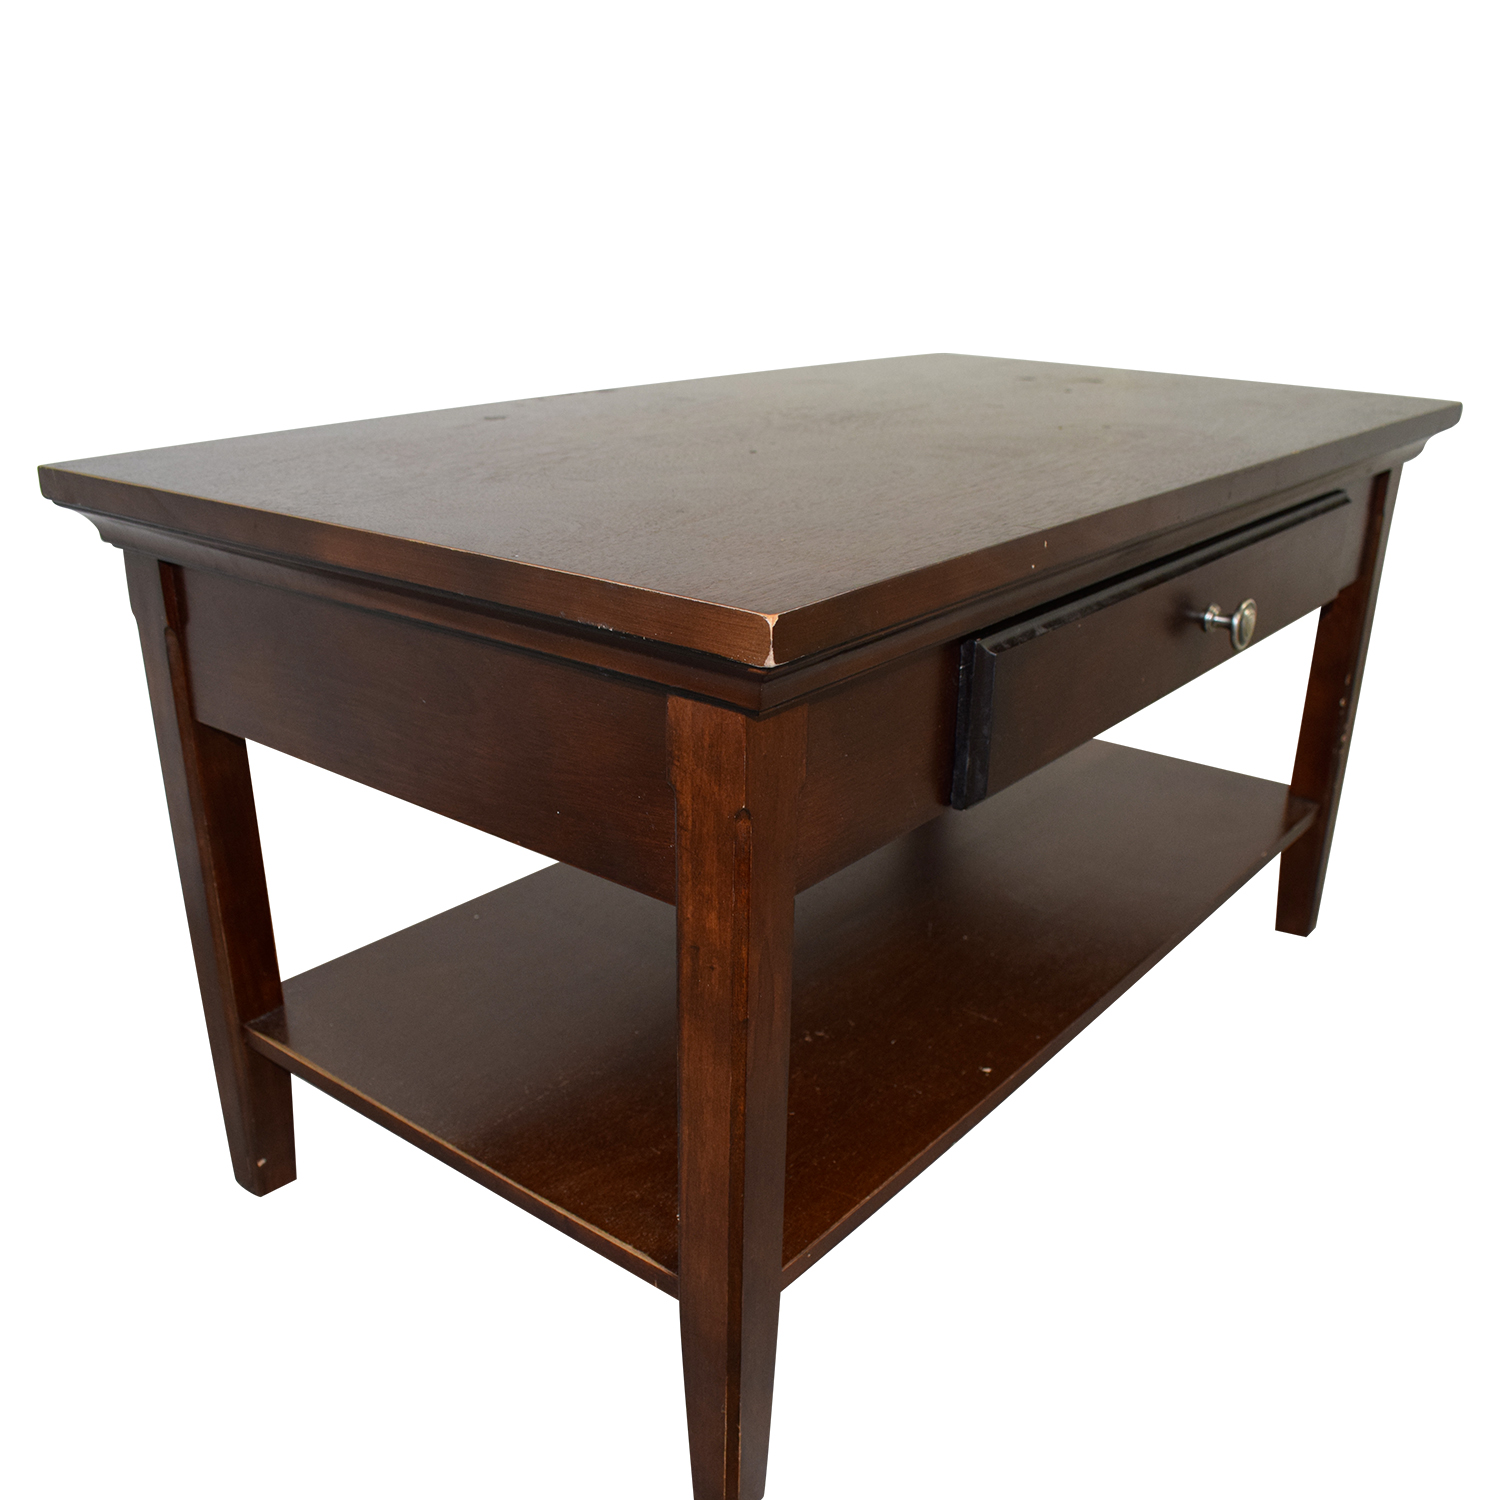 Wooden Classic Coffee Table price